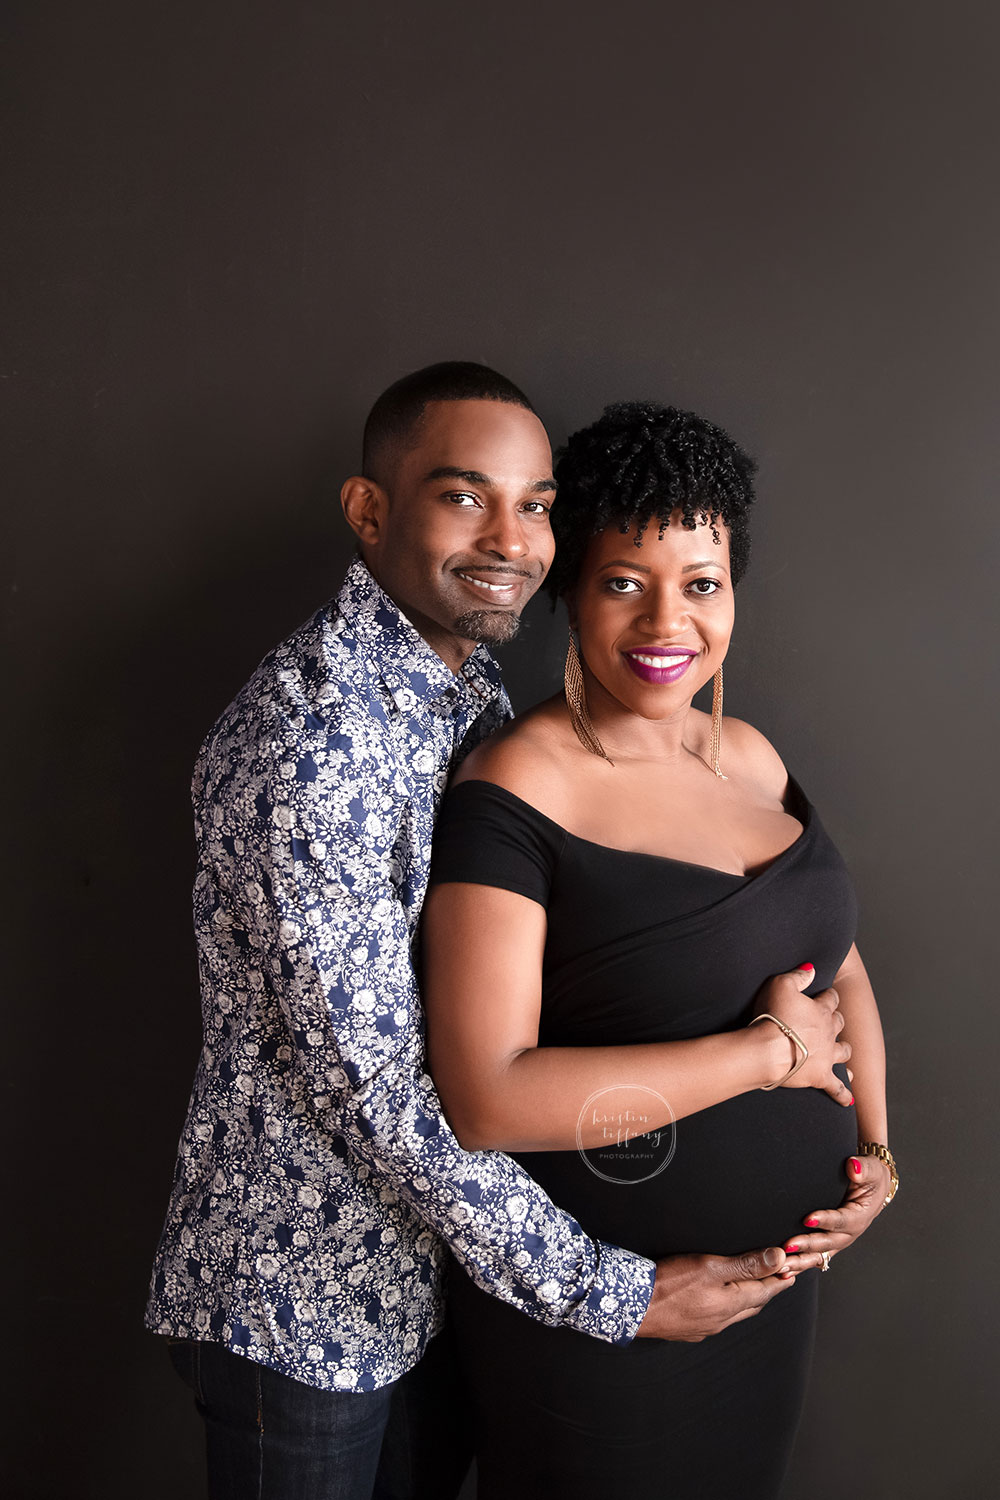 a maternity photo of a husband and wife